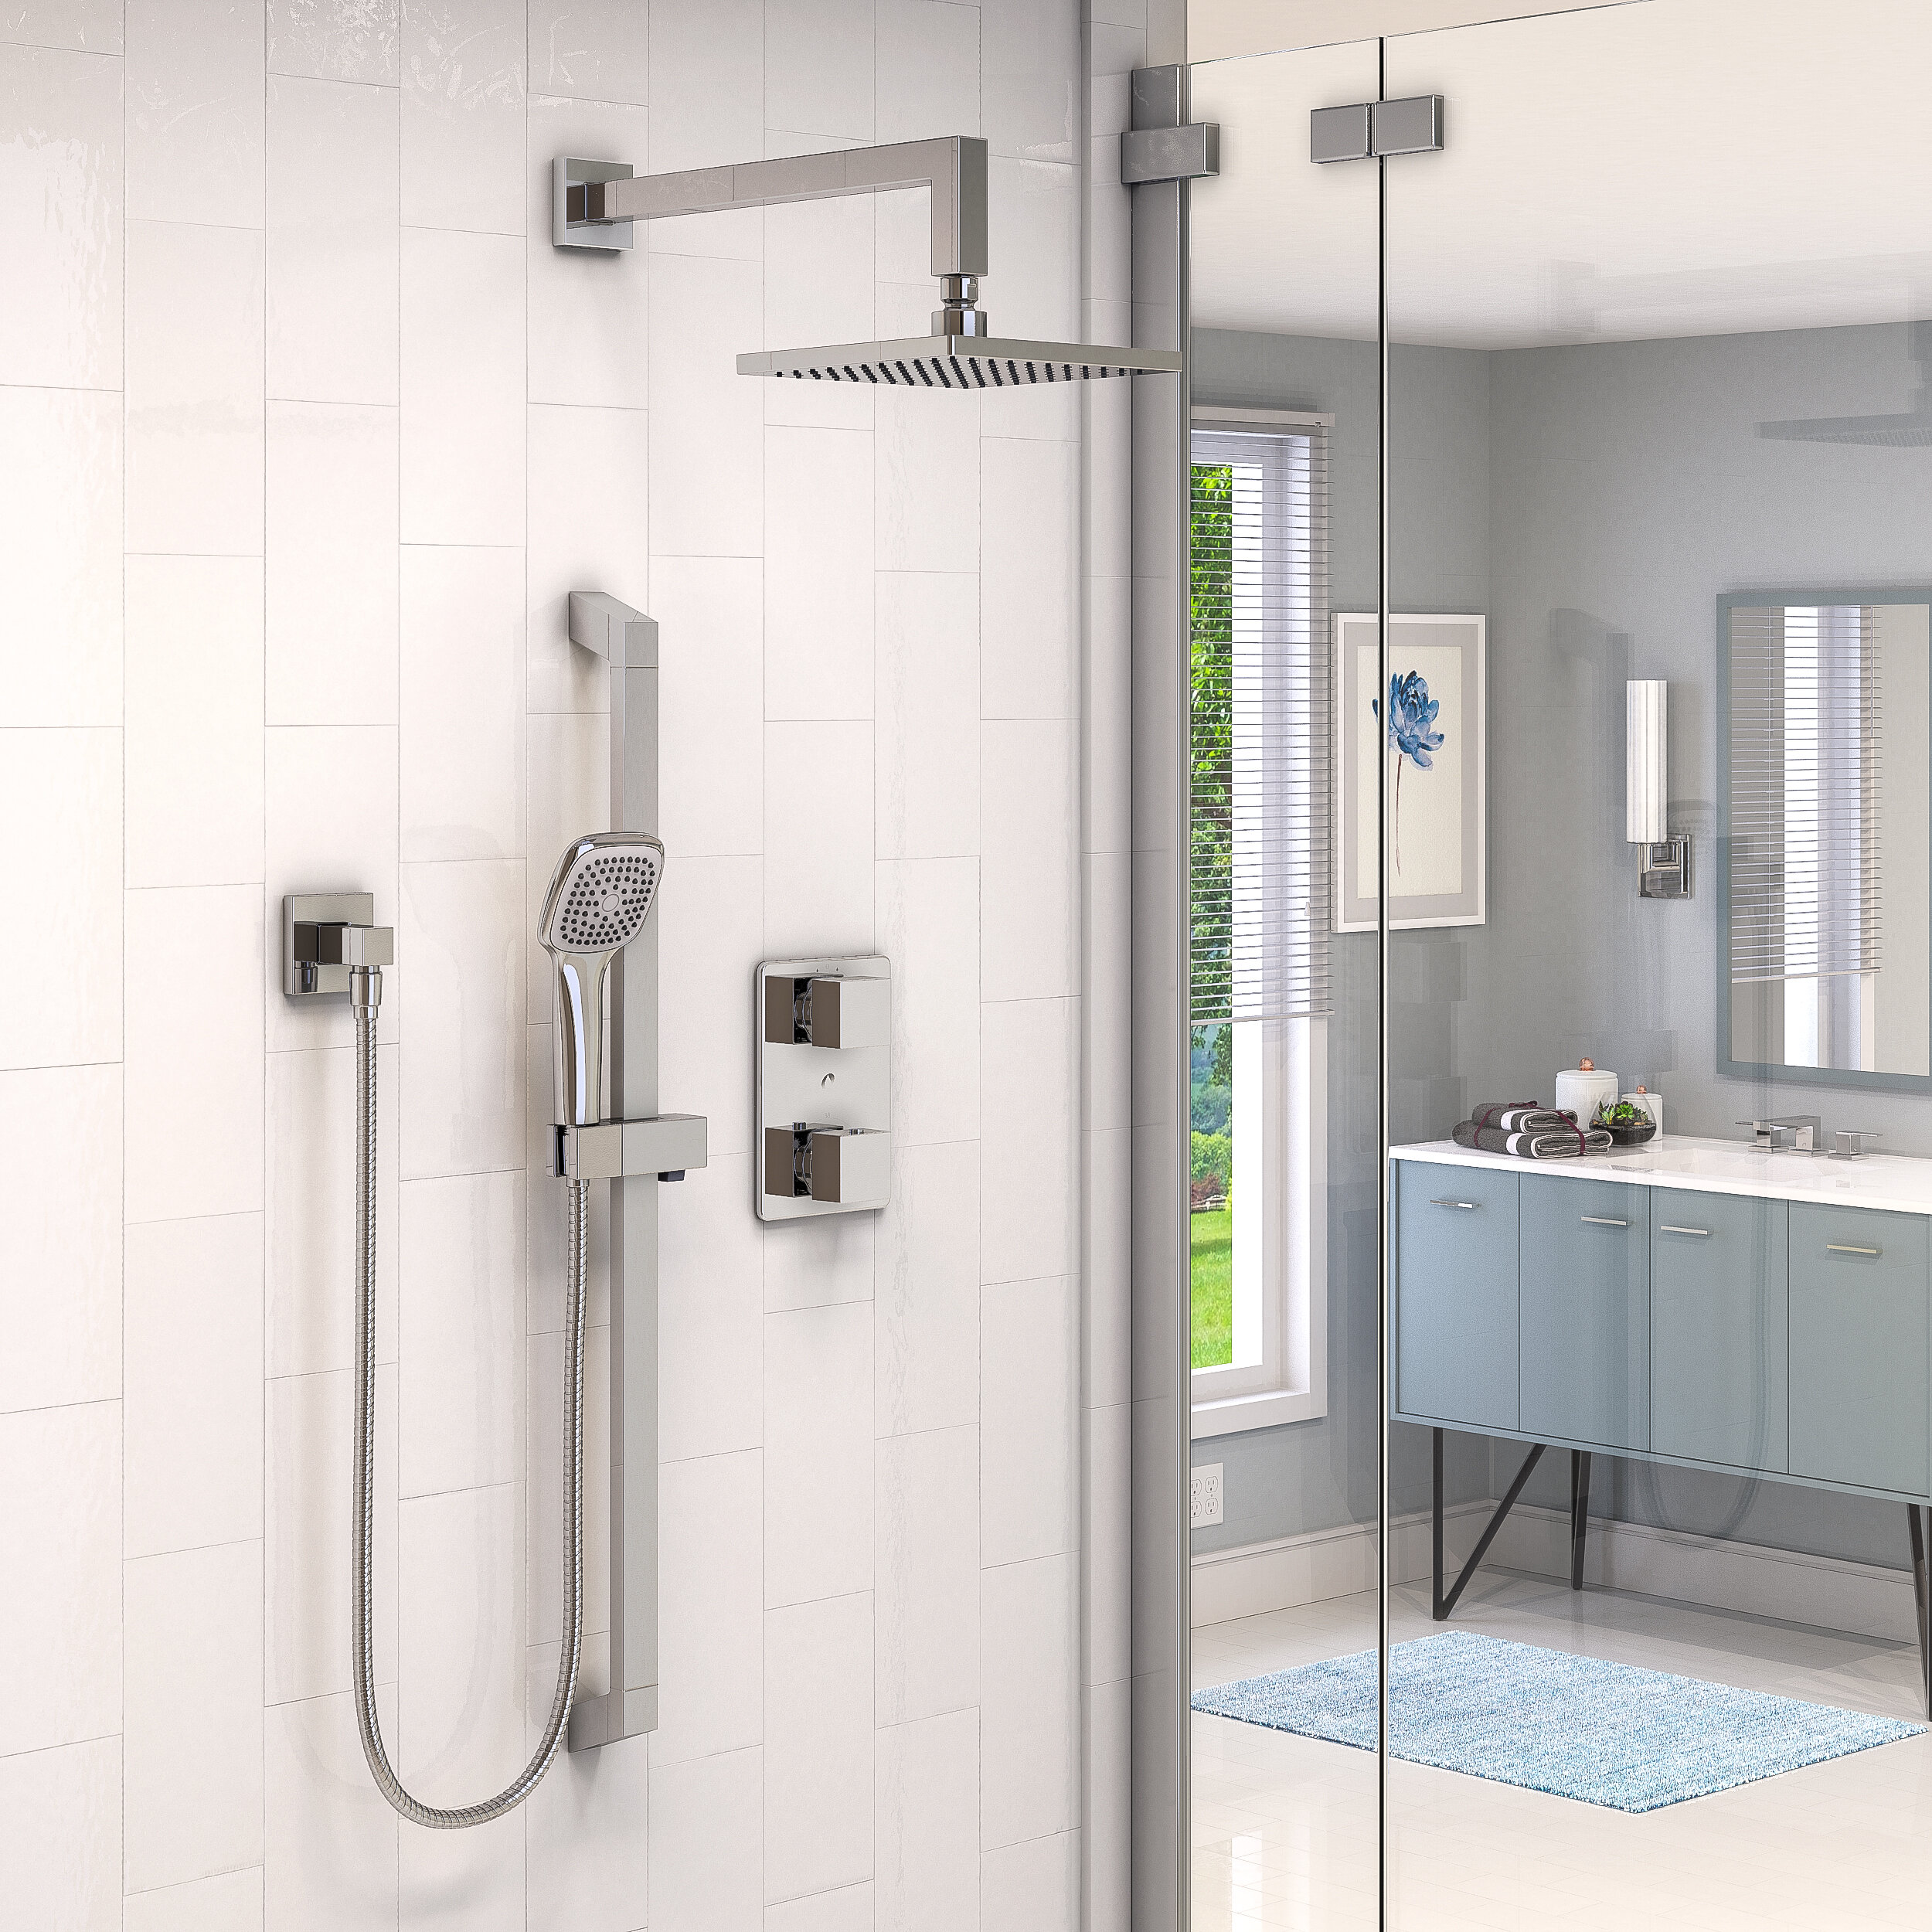 Chrome Double Handle Shower Faucets Systems You Ll Love In 2021 Wayfair